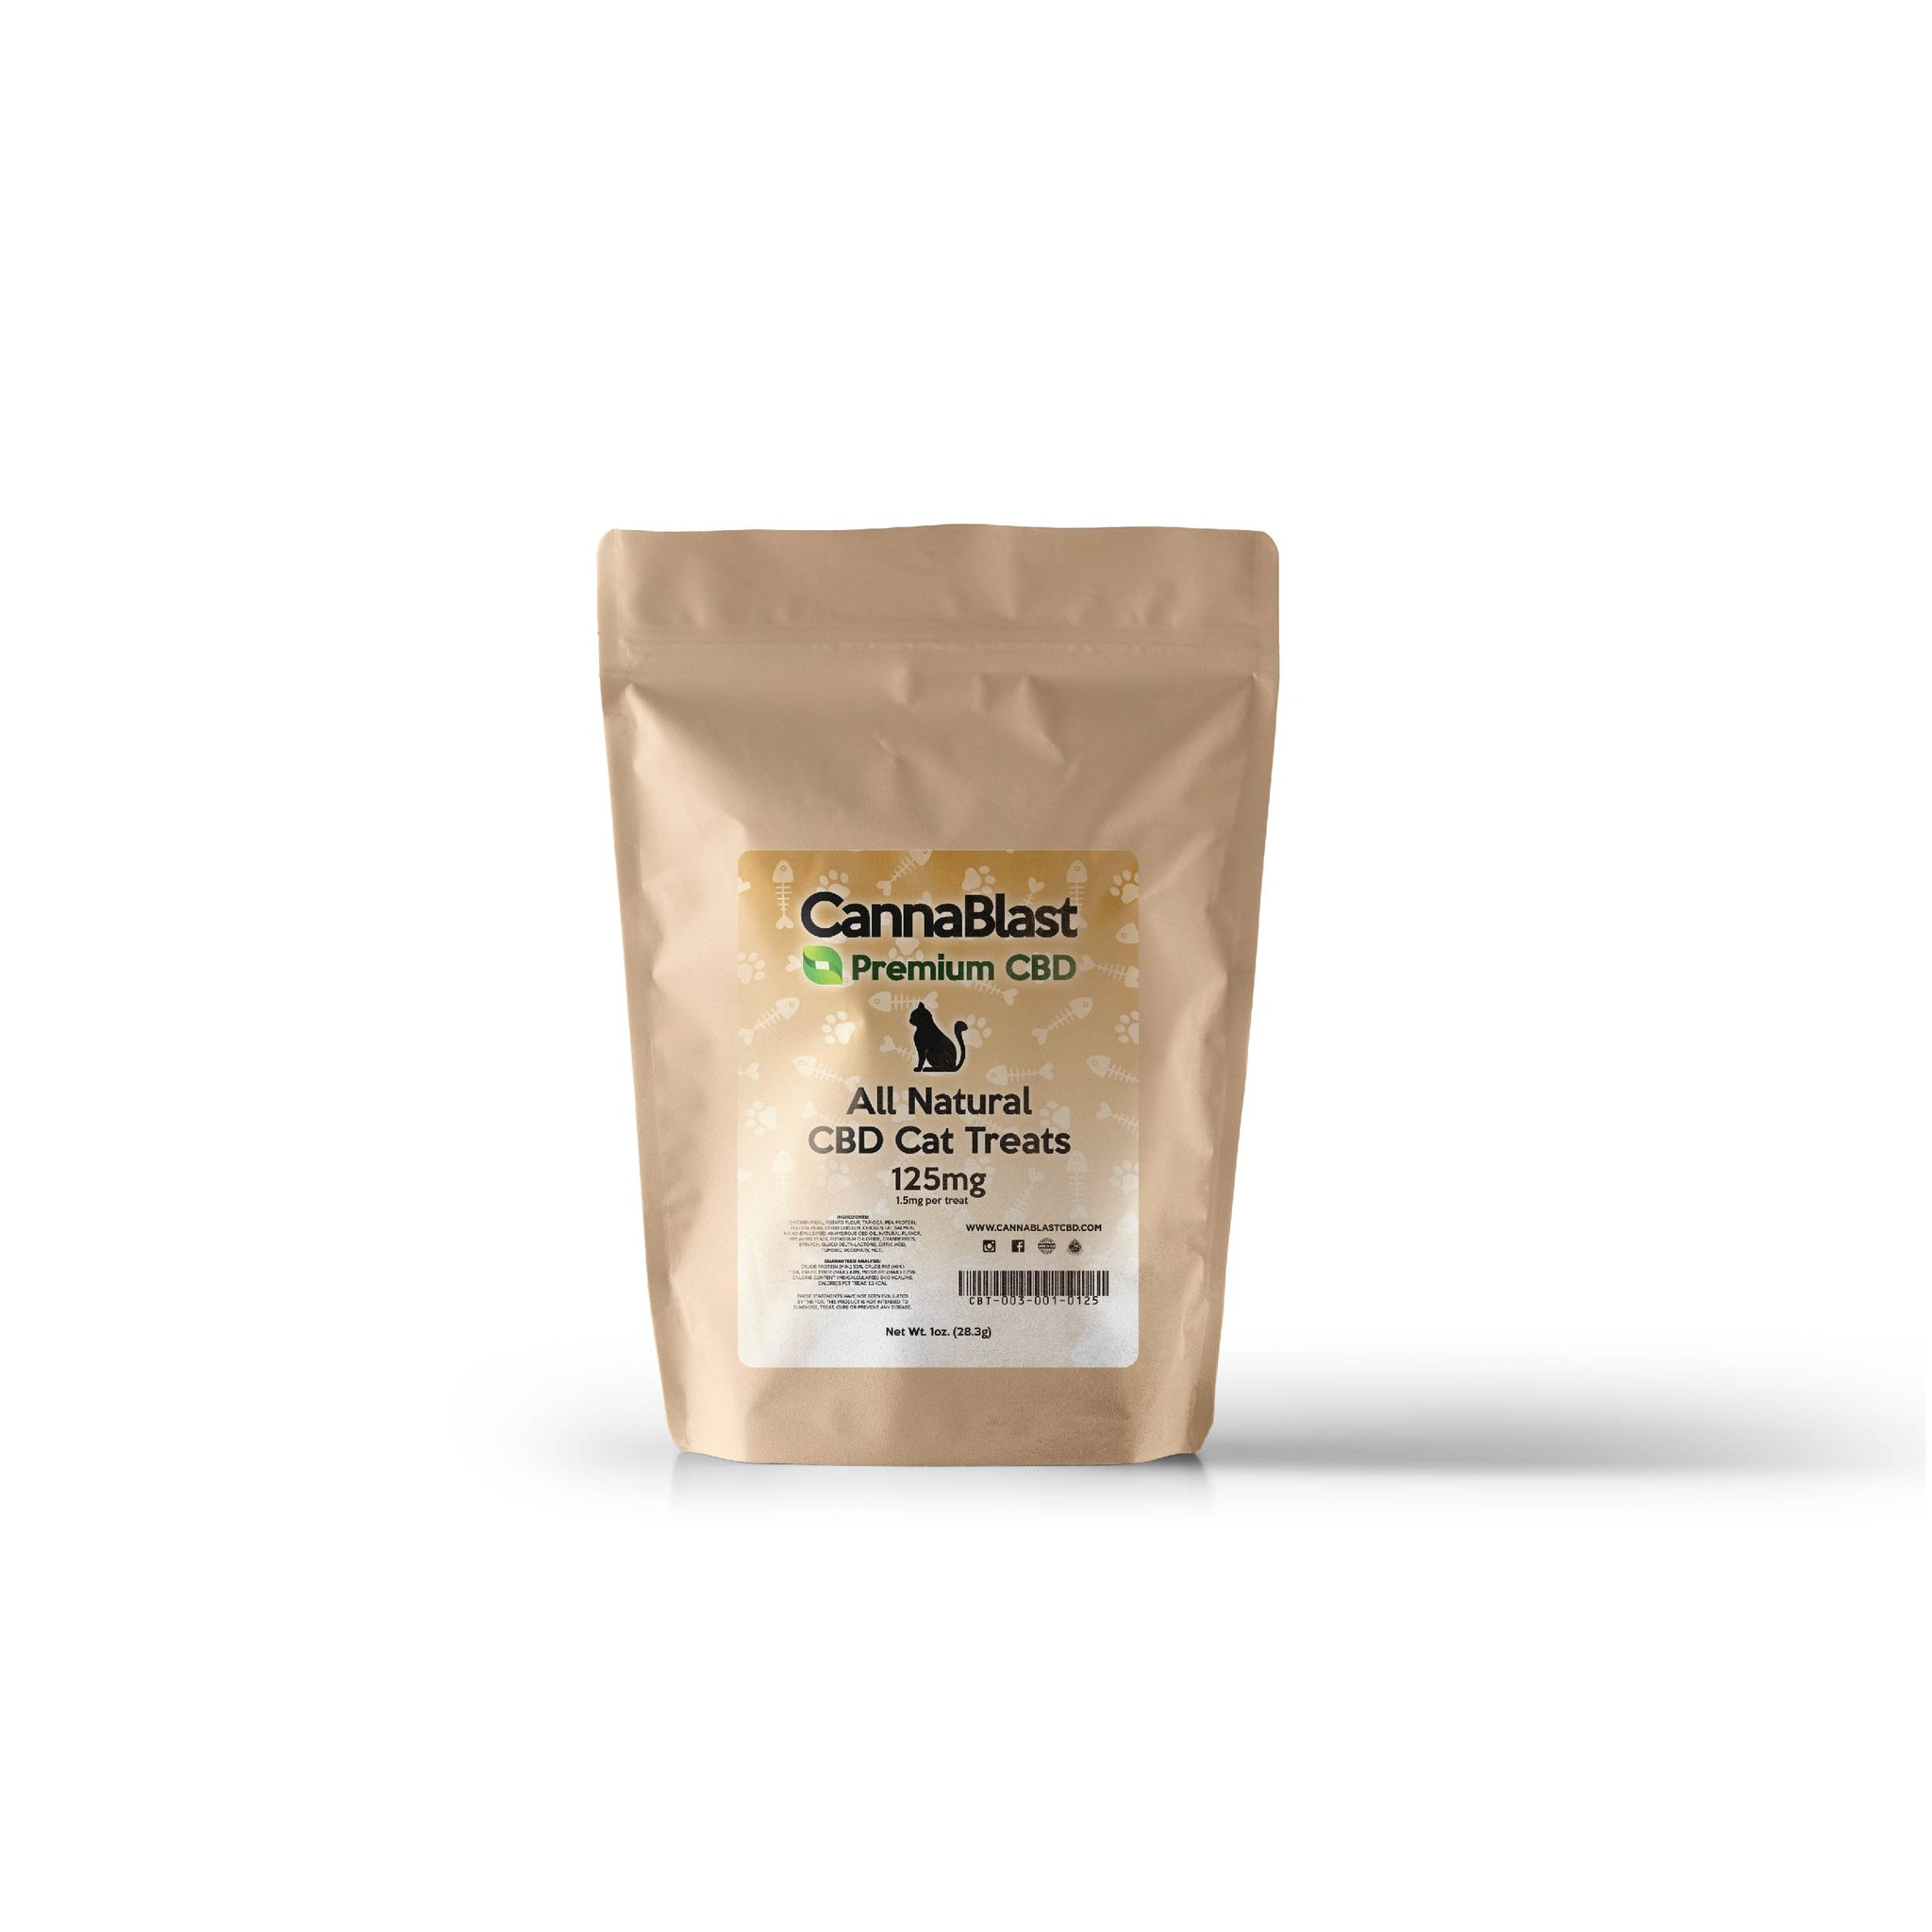 Cannablast Premium CBD All Natural CBD Cat Treats